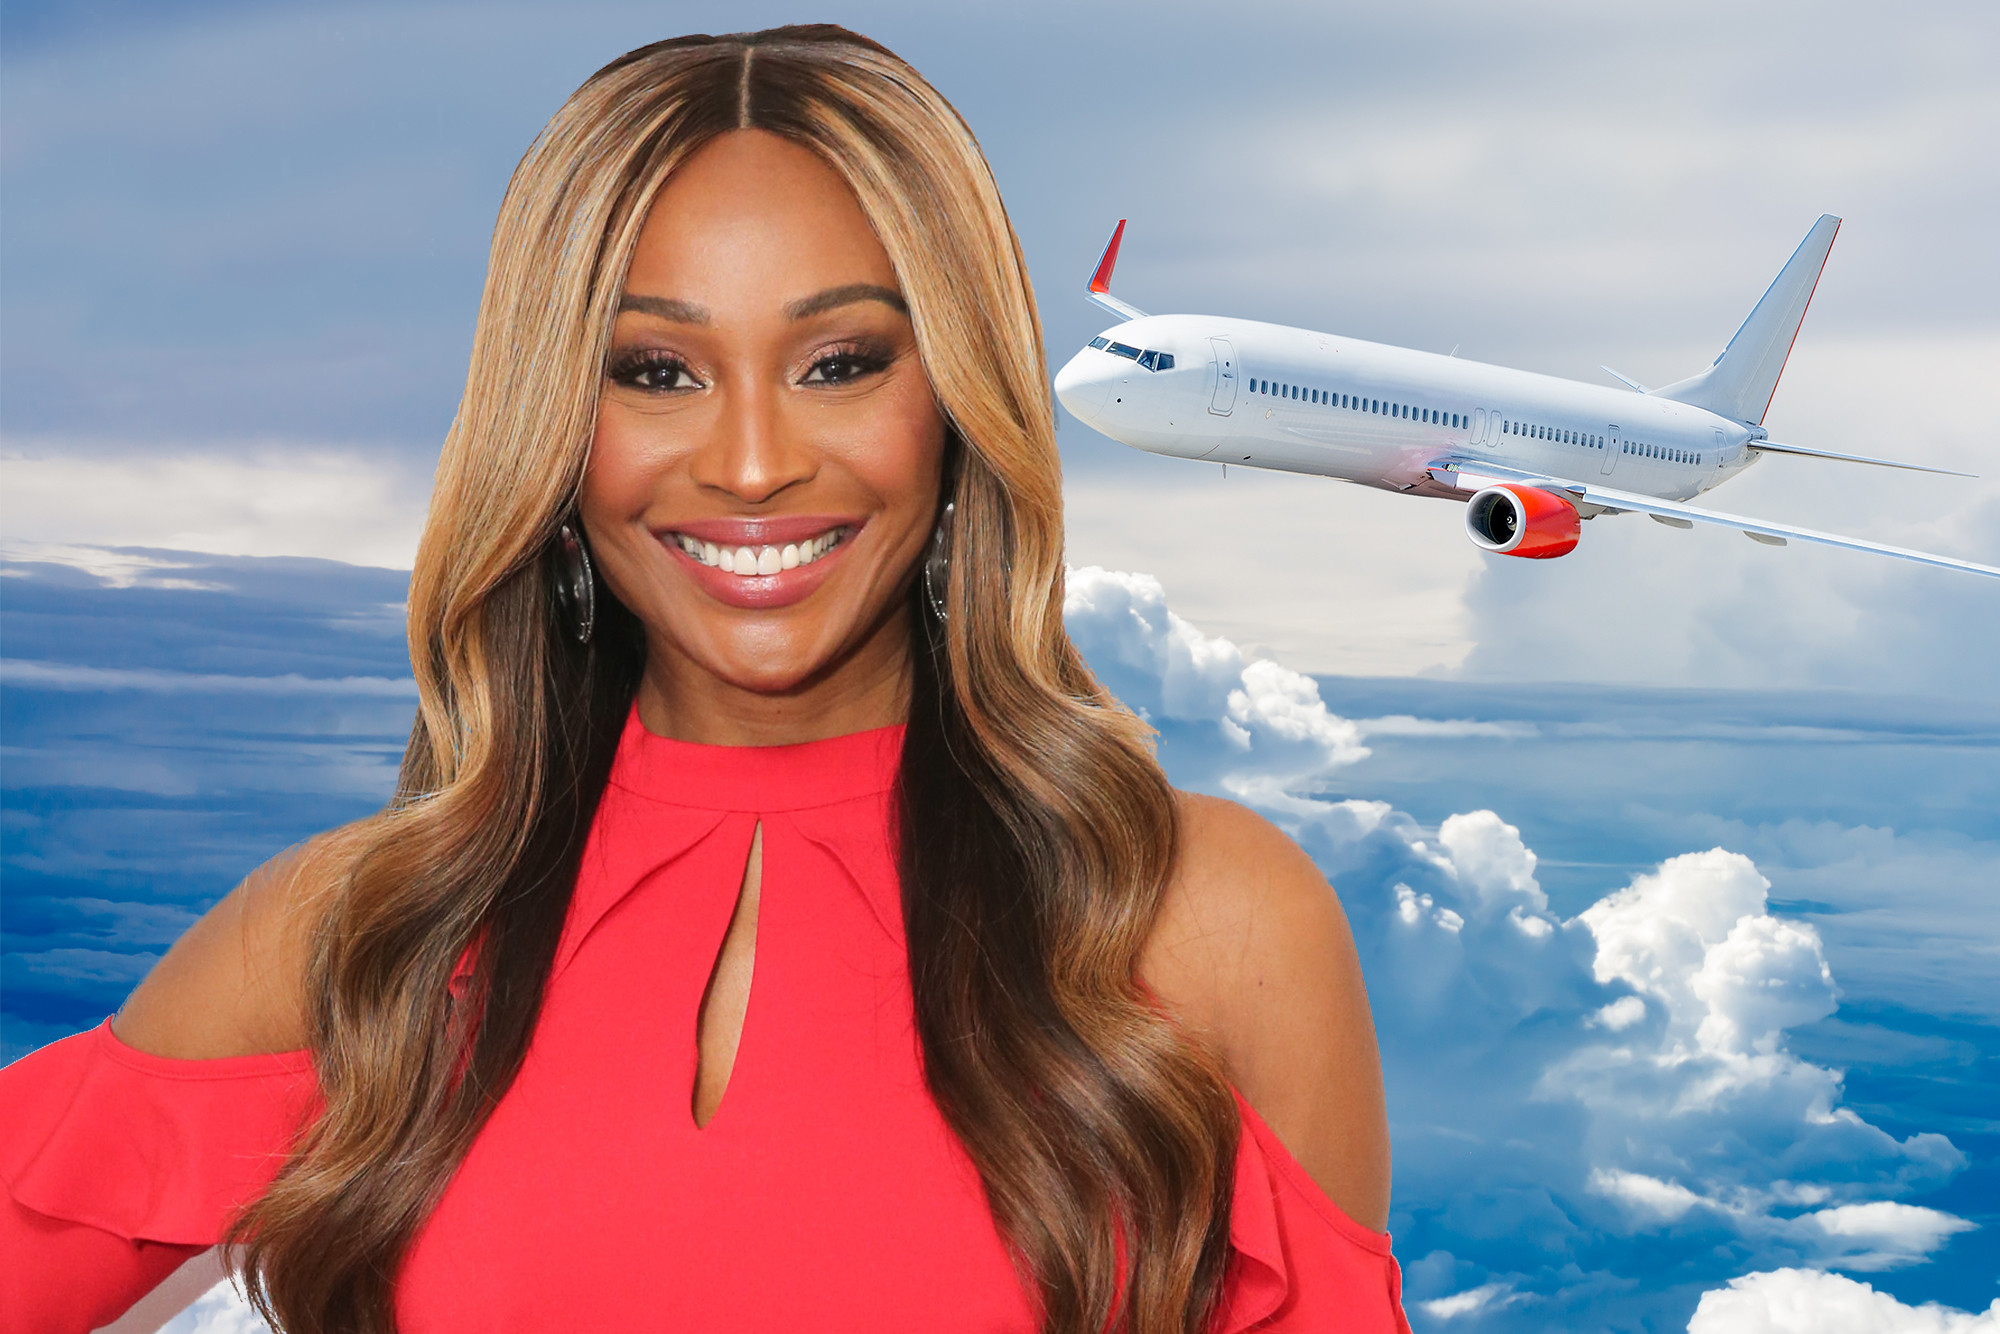 Cynthia Bailey wants to test out 'airplane chemistry' with boyfriend